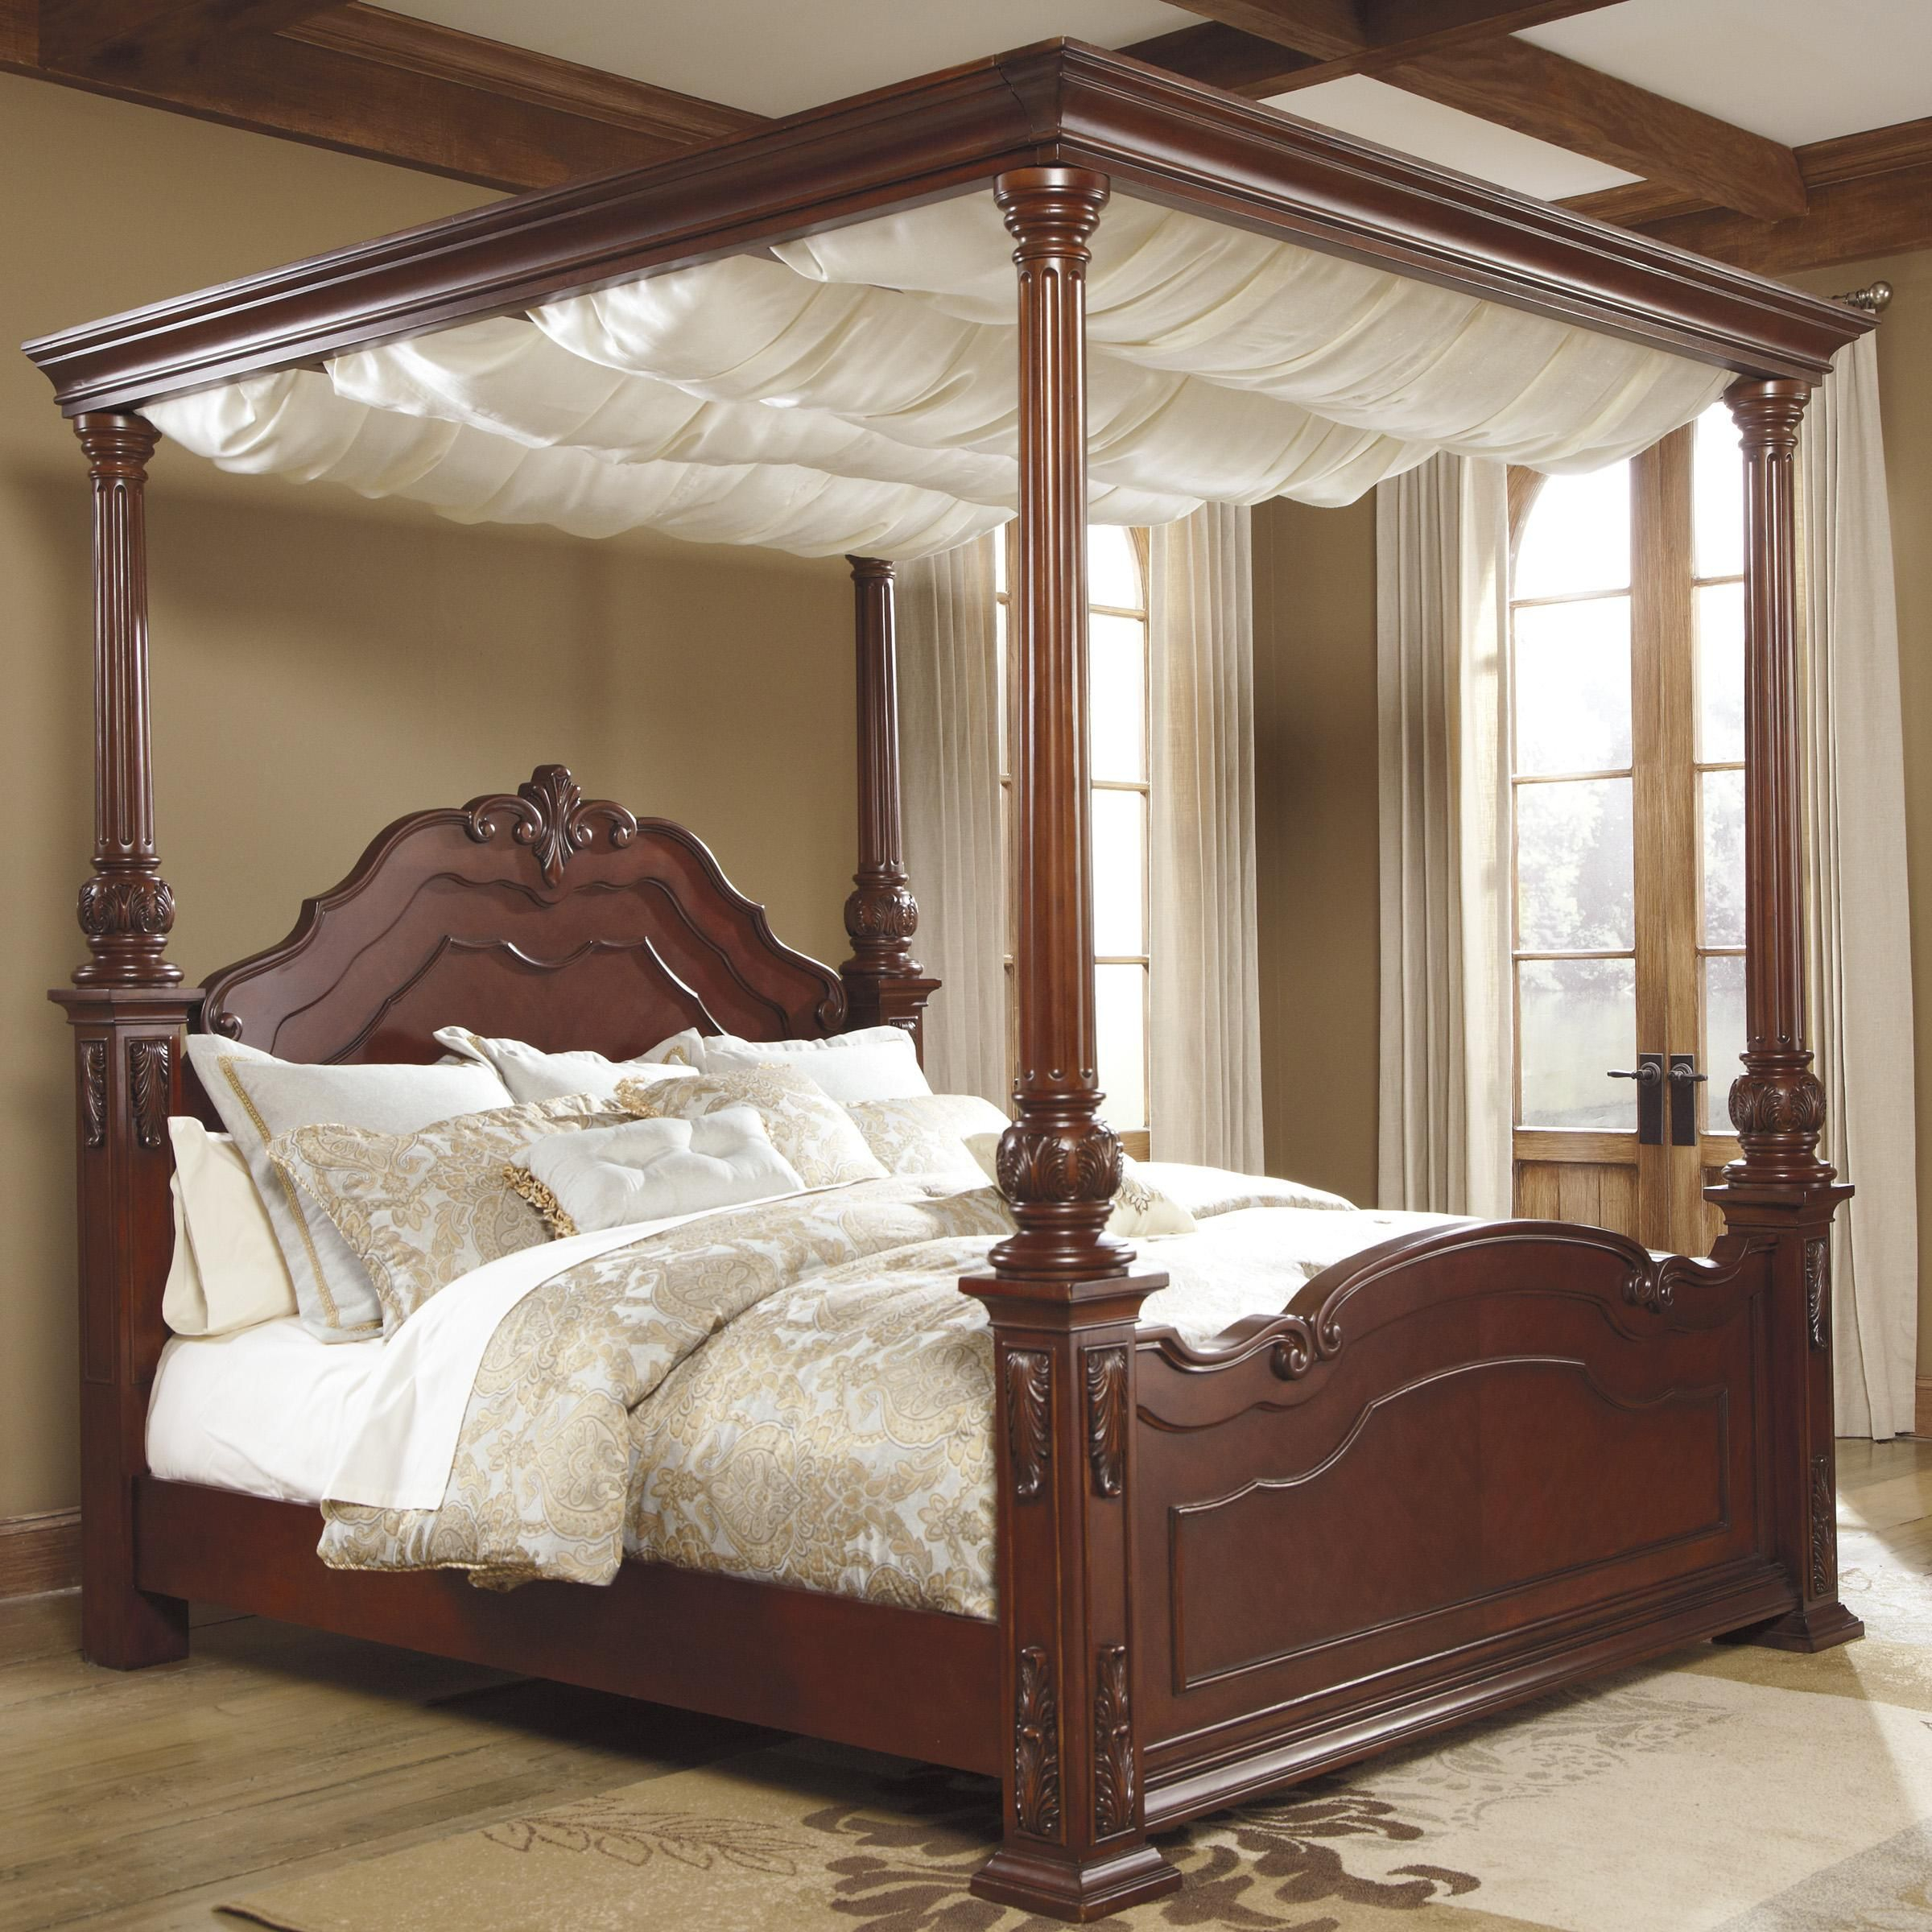 Elegant Canopy Bed Curtains King With Majestic Cream Color Sheer Layjao